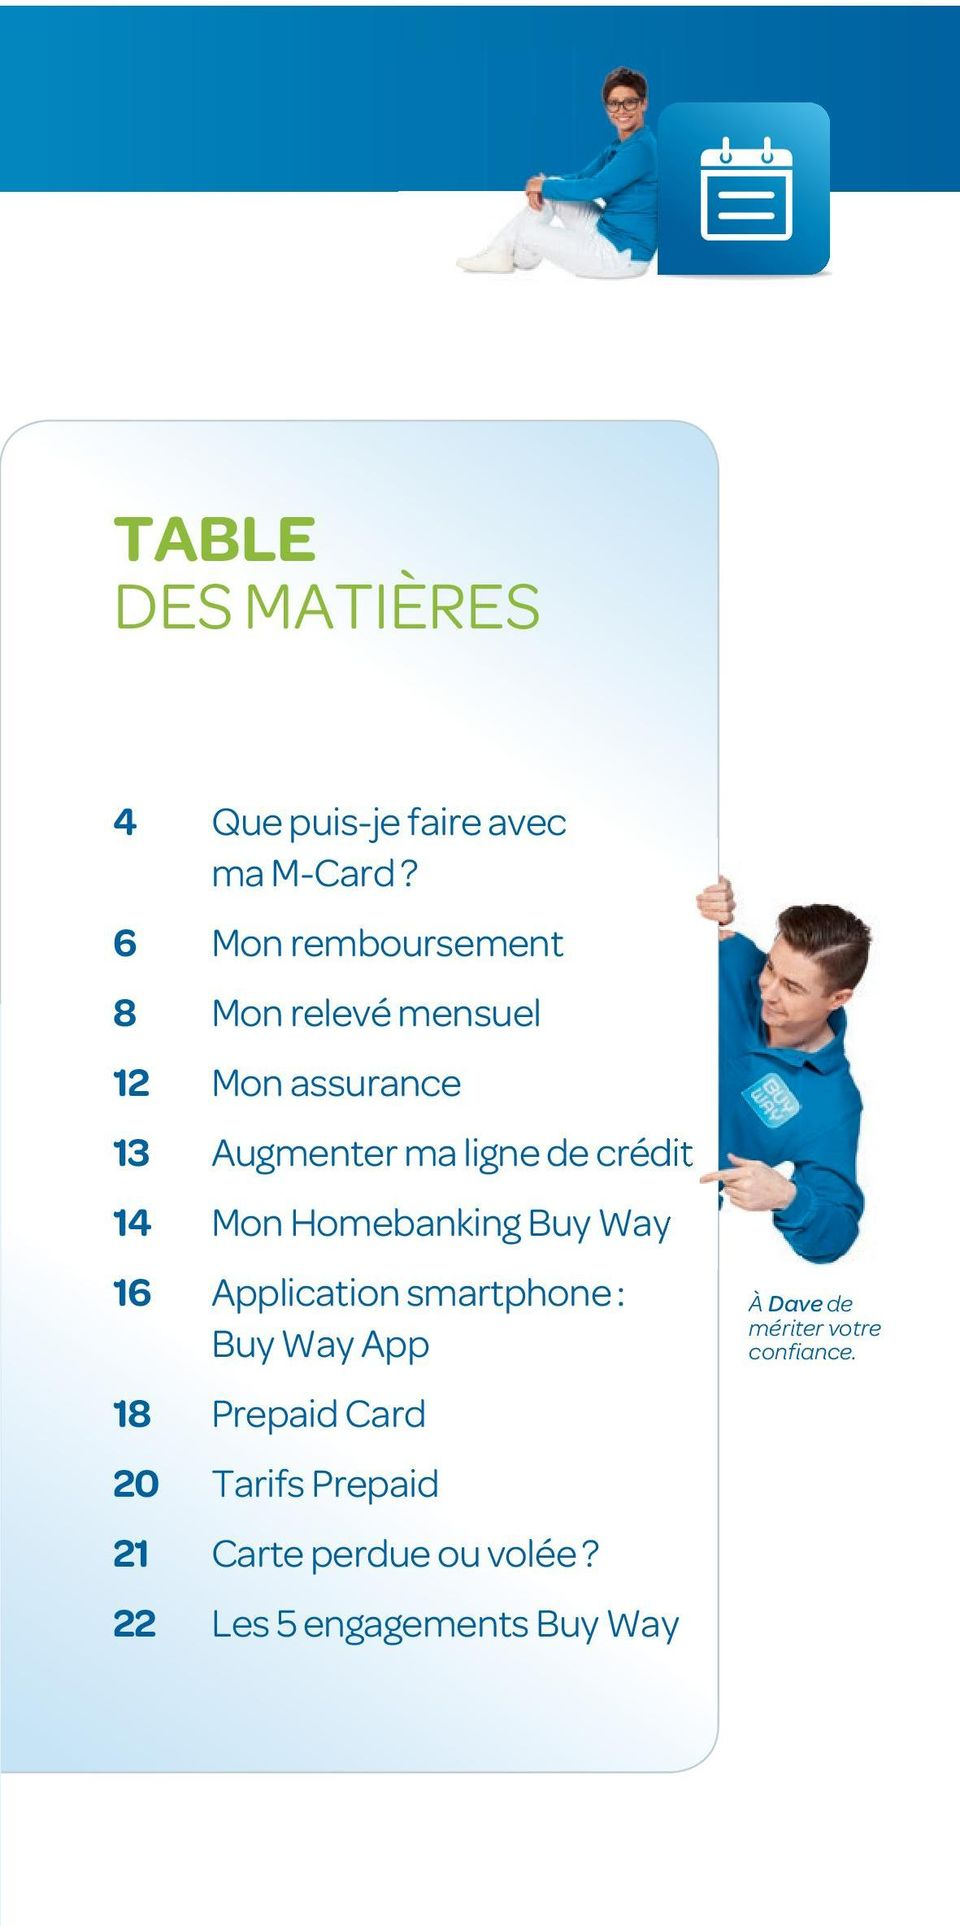 crédit 14 Mon Homebanking Buy Way 16 Application smartphone : Buy Way App 18